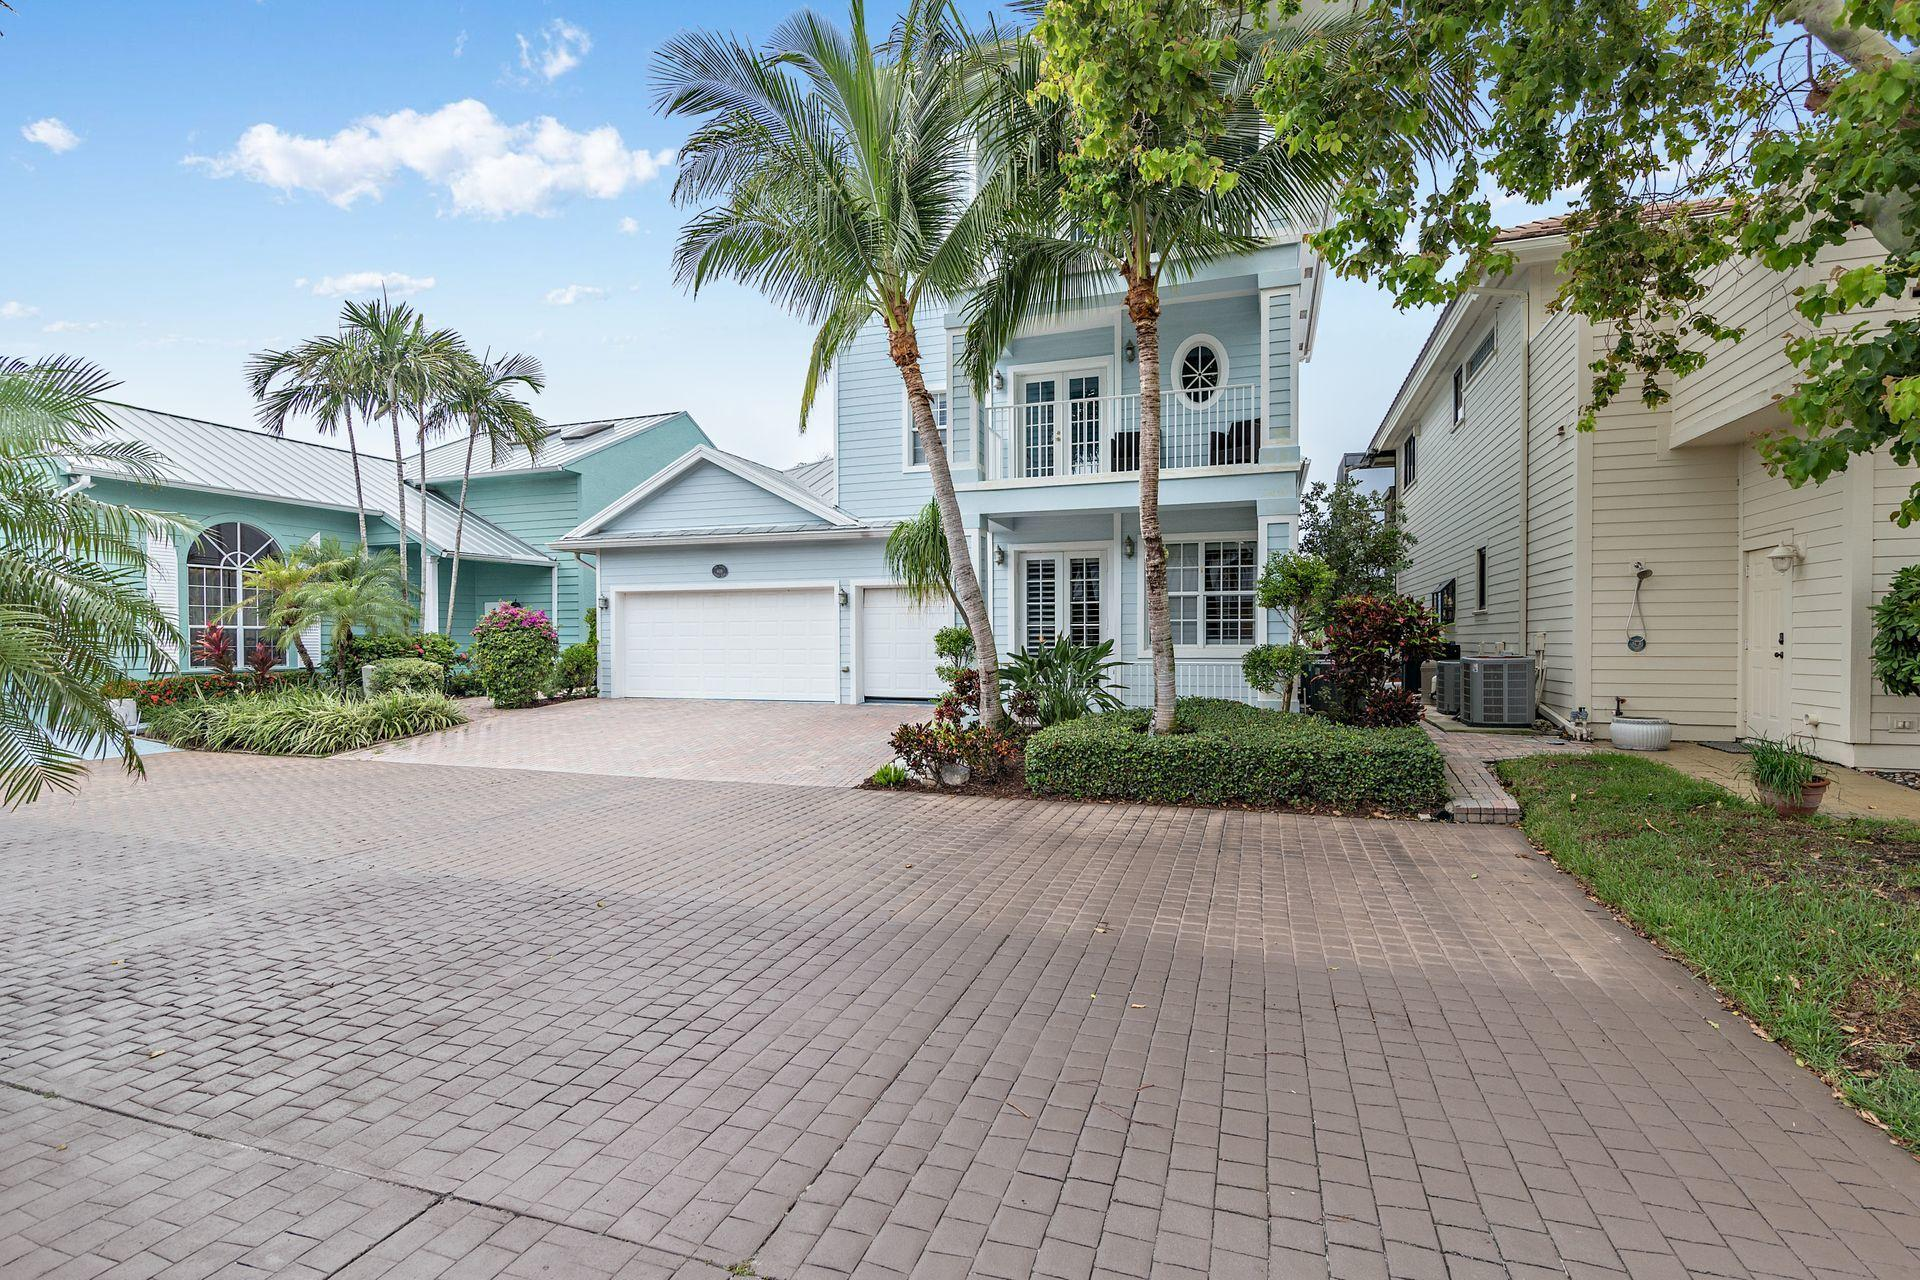 Your Florida beach home awaits with this 5 BR, 4 Bath, 3-story Key West style home off of A1A in the special gated community of Xanadu. With a total of 64 homesites all steps from beautiful Jupiter Beach, you can enjoy a Fl lifestyle right out your front door with biking, walking and running at the Atlantic Ocean on A1A. This home is situated on a cul-de-sac that features a private pool, impact windows and doors, first floor living, stainless apps, an induction cook top, granite c'tops and an elevator. An open floor plan and Island kitchen gives you the perfect space to entertain. 4 Bedrooms on second floor and master bedroom ensuite on the entire 3rd floor. Enjoy the ocean breezes from your bedroom Balcony. World class dining, fishing and golf nearby, 25 mins to Palm Beach Int'l airport. Member of Xanadu HOA has right of first refusal on any offer accepted.